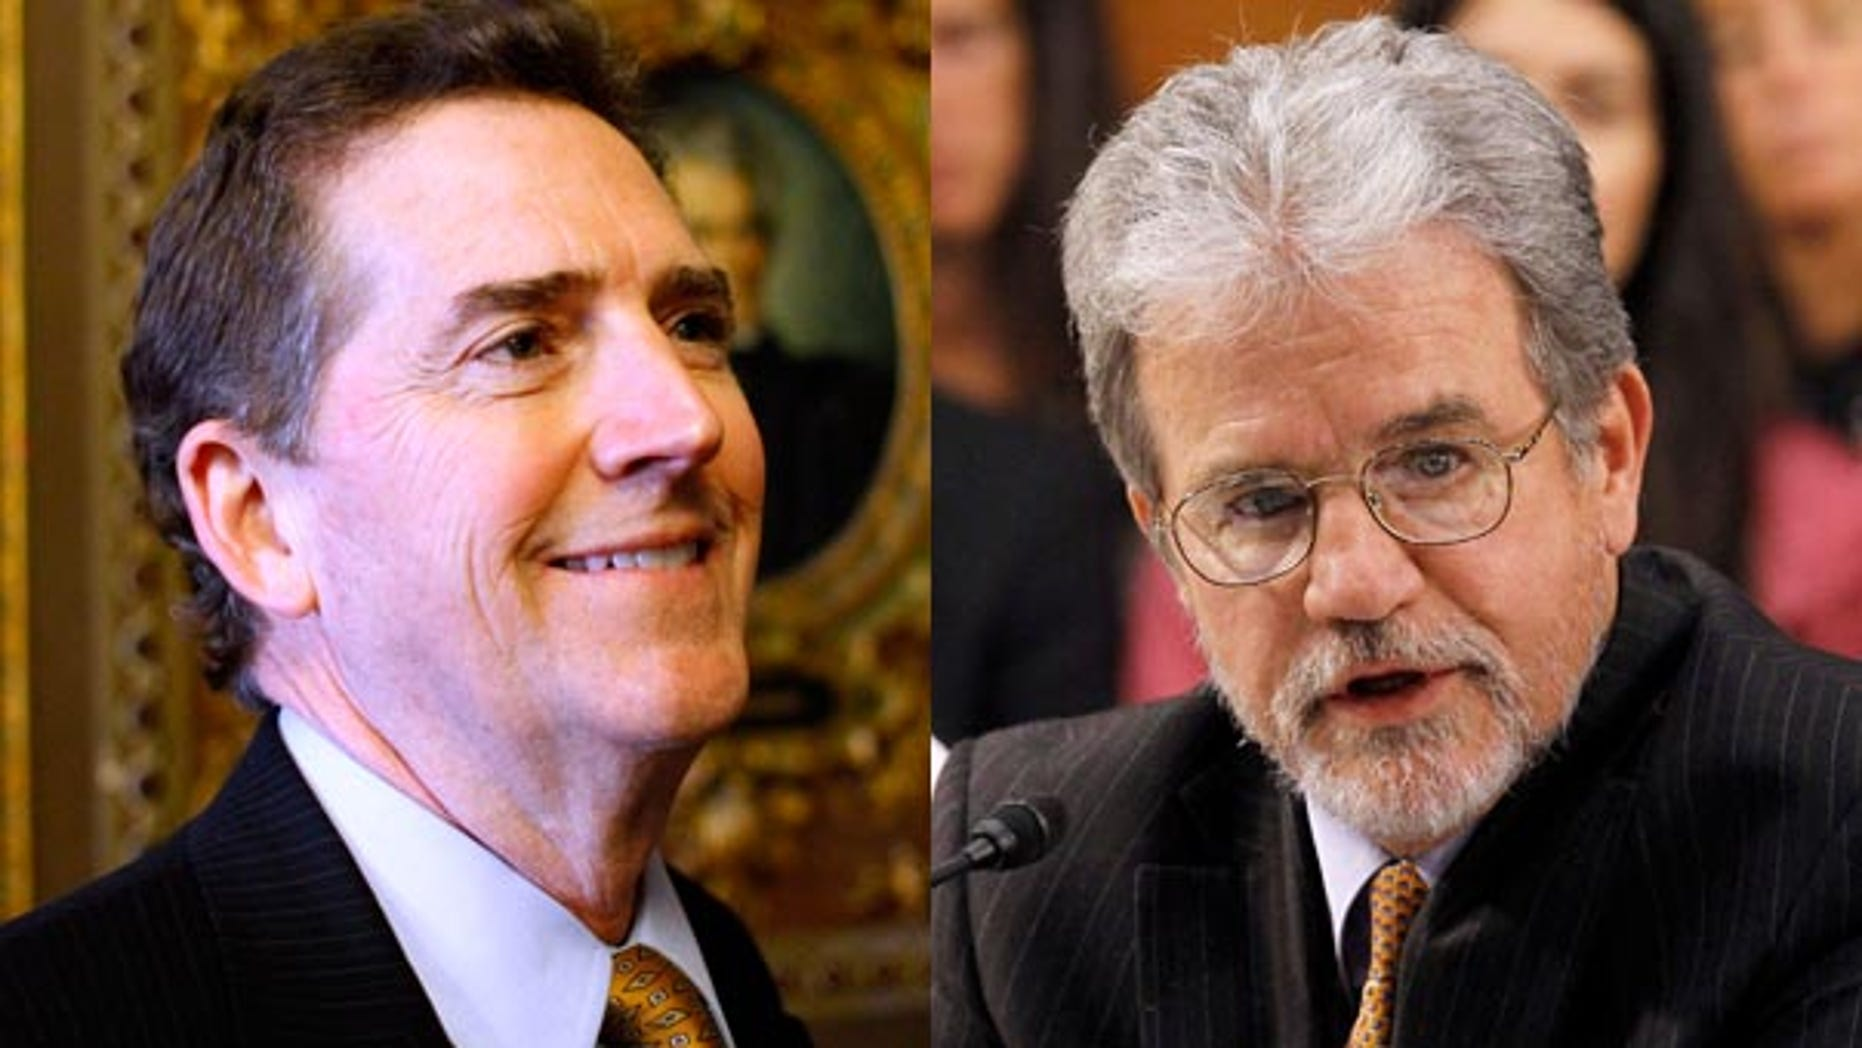 Sens. Jim DeMint, R-S.C, and Tom Coburn, R-Okla., are leading the charge against a Democratic-sponsored omnibus spending bill to fund government through the rest of the fiscal year ending Sept. 30.